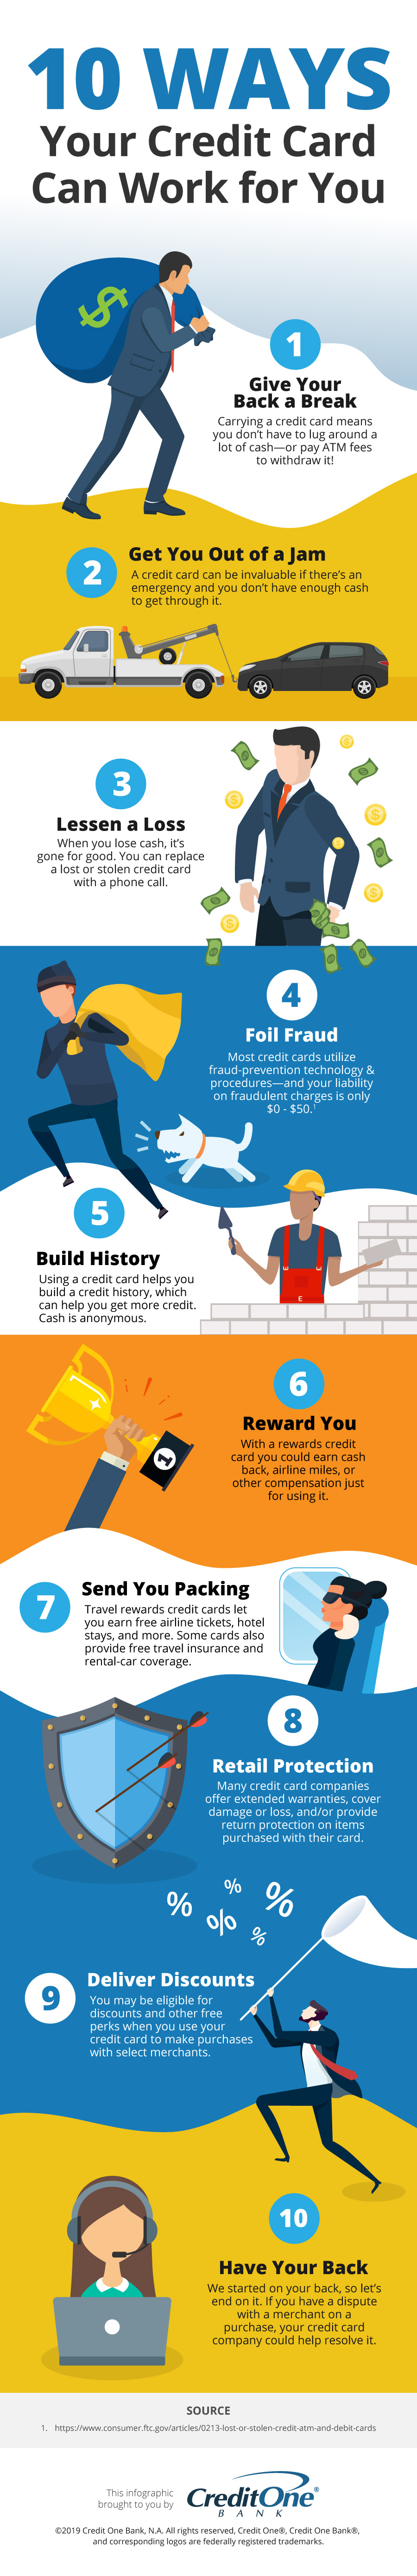 How Credit Cards Work for You [Infographic]